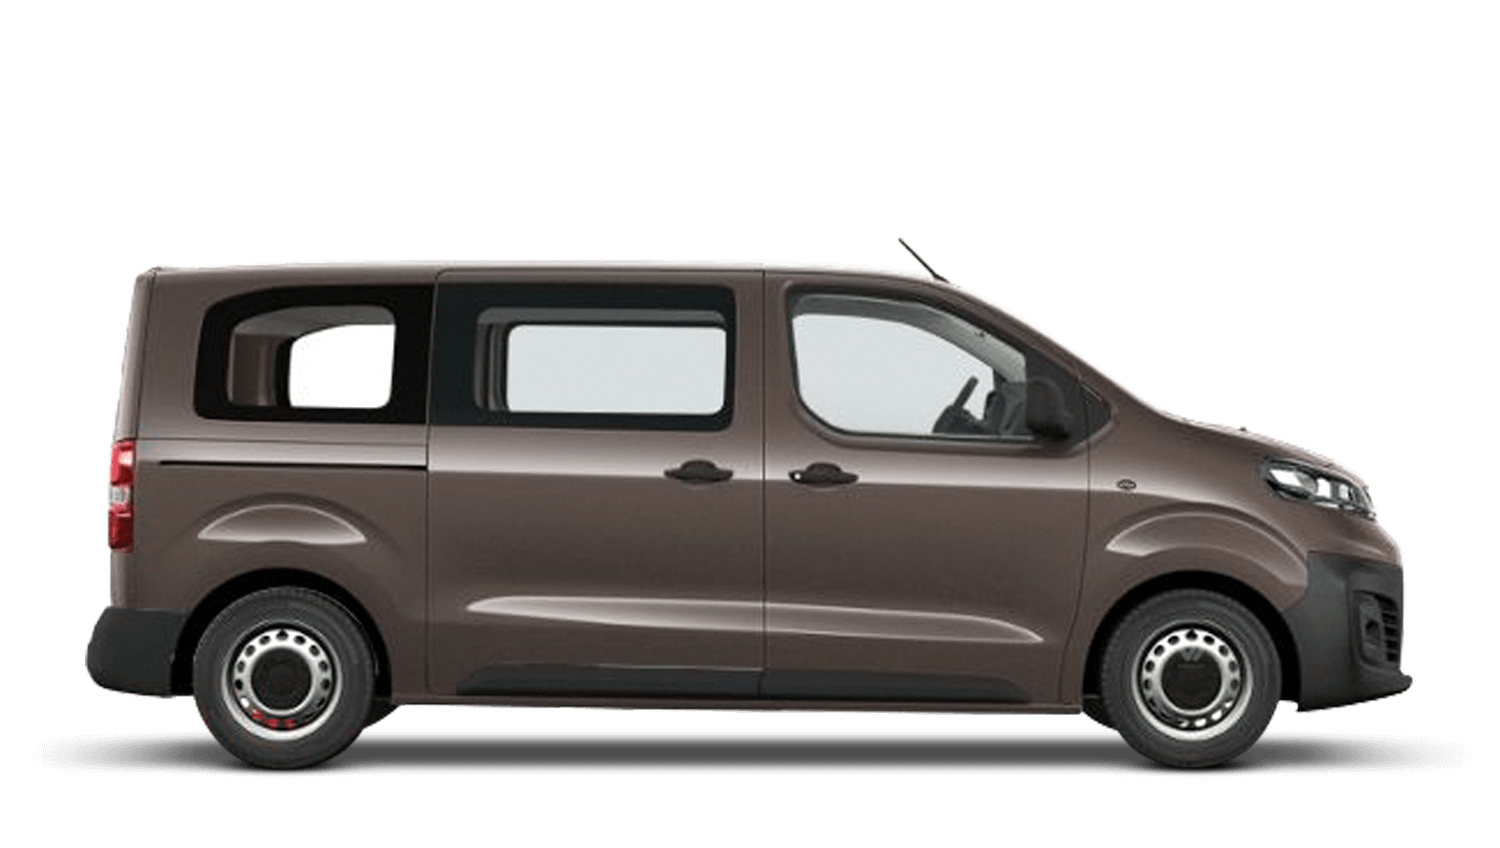 Rich Oak Brown (Metallic) Vauxhall Vivaro Life